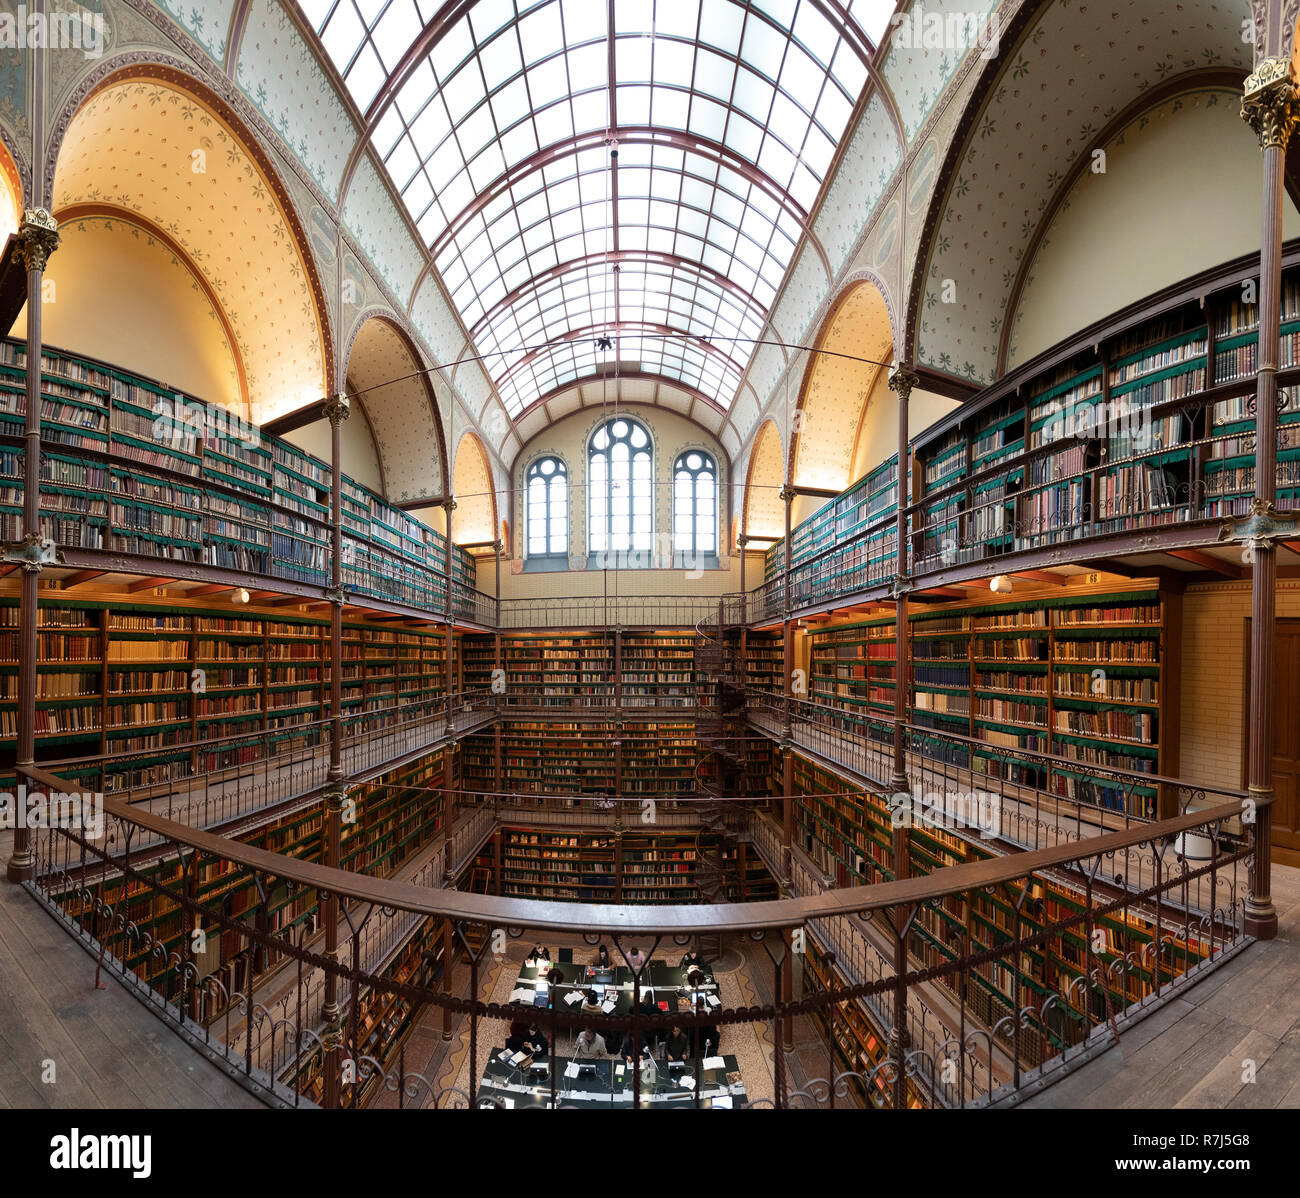 Interior of art history research library at the Rijksmuseum in Amsterdam, The Netherlands Stock Photo